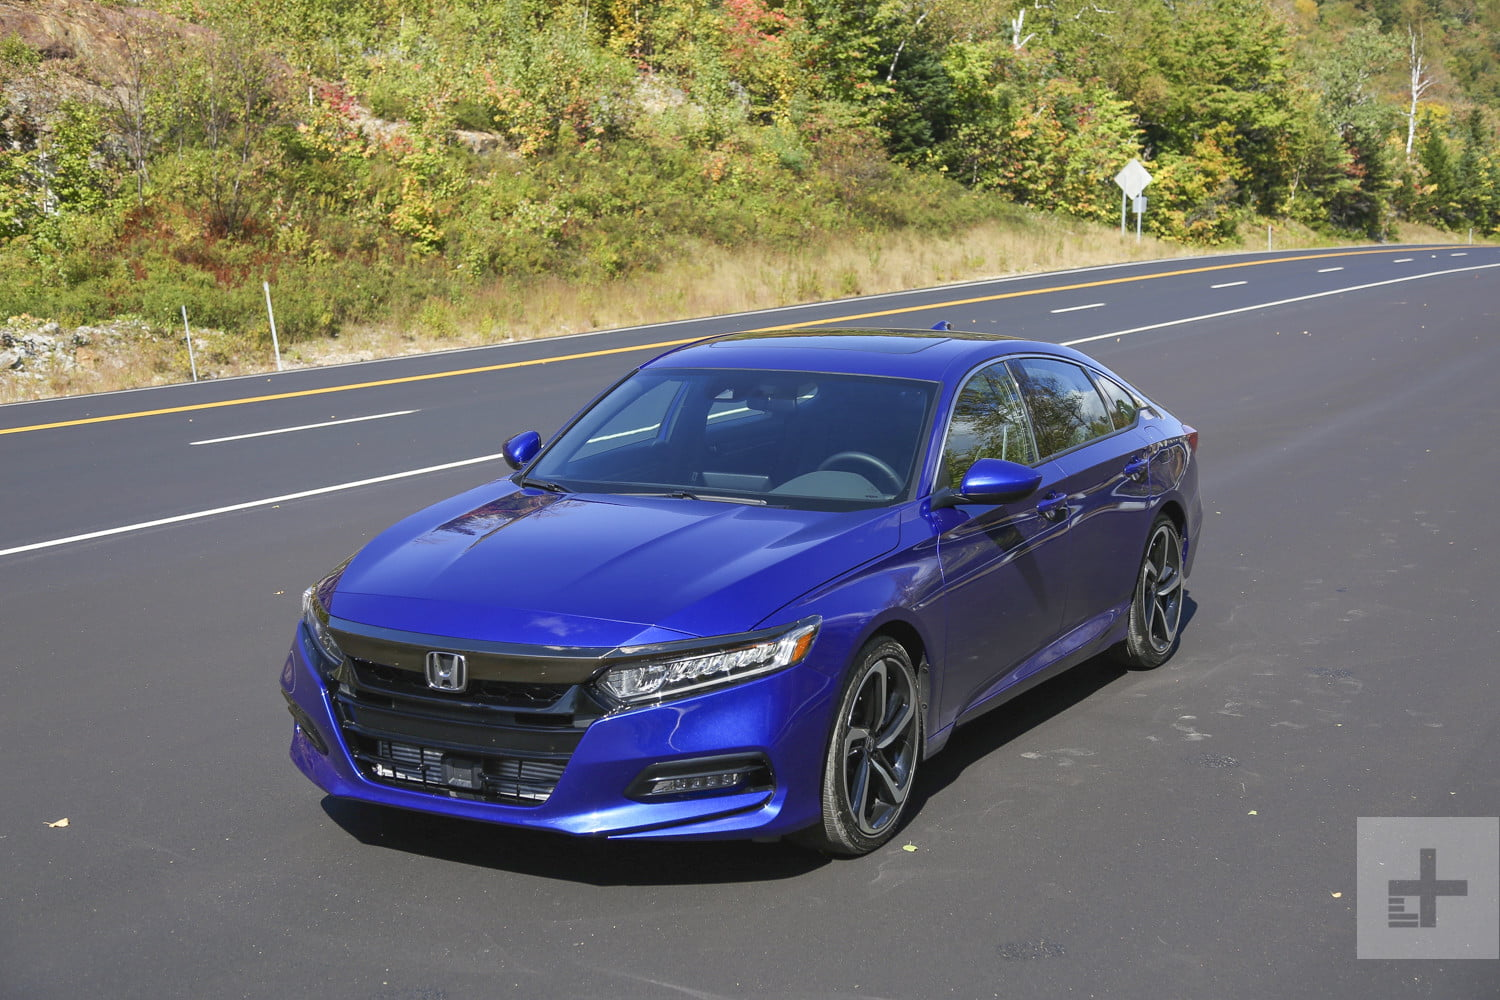 2018 honda accord first drive review pictures specs digital trends. Black Bedroom Furniture Sets. Home Design Ideas